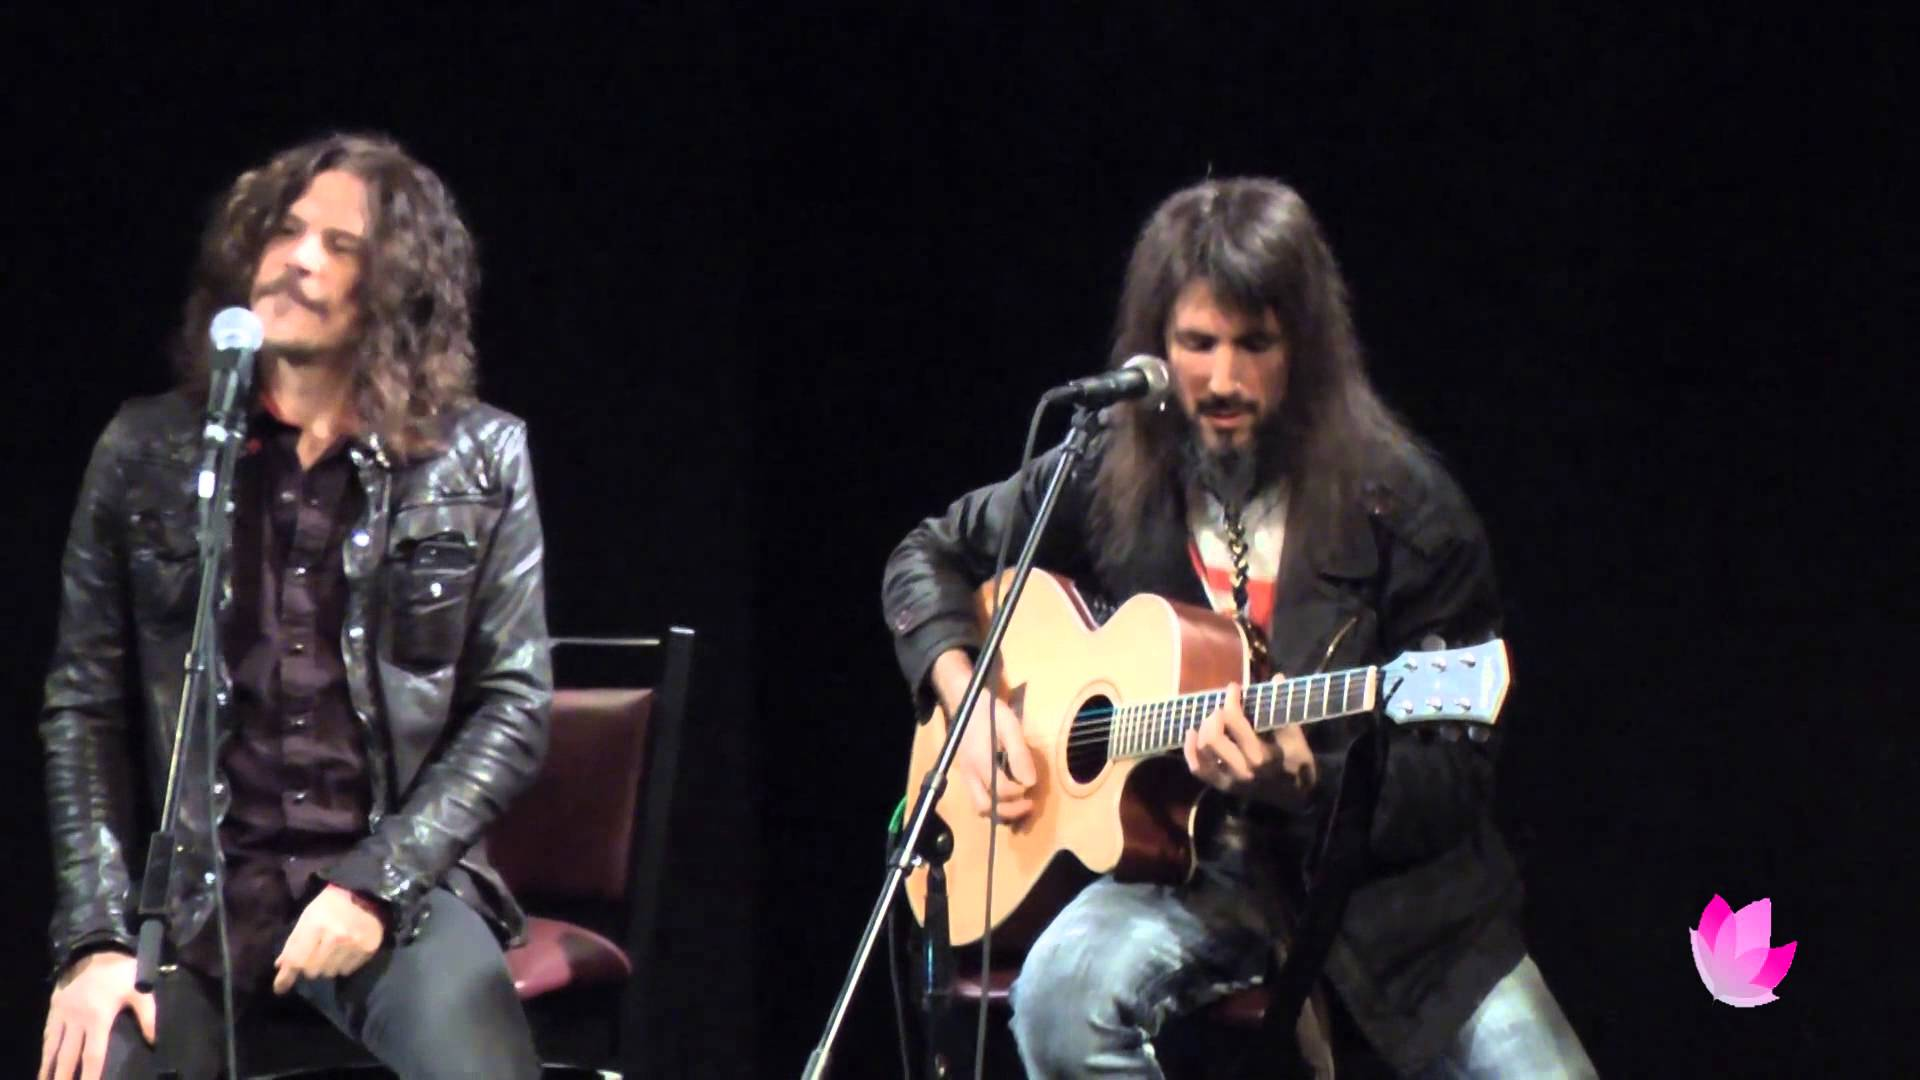 Tony Harnell and Bumblefoot – Progressive Nation at Sea Featured Artists #12